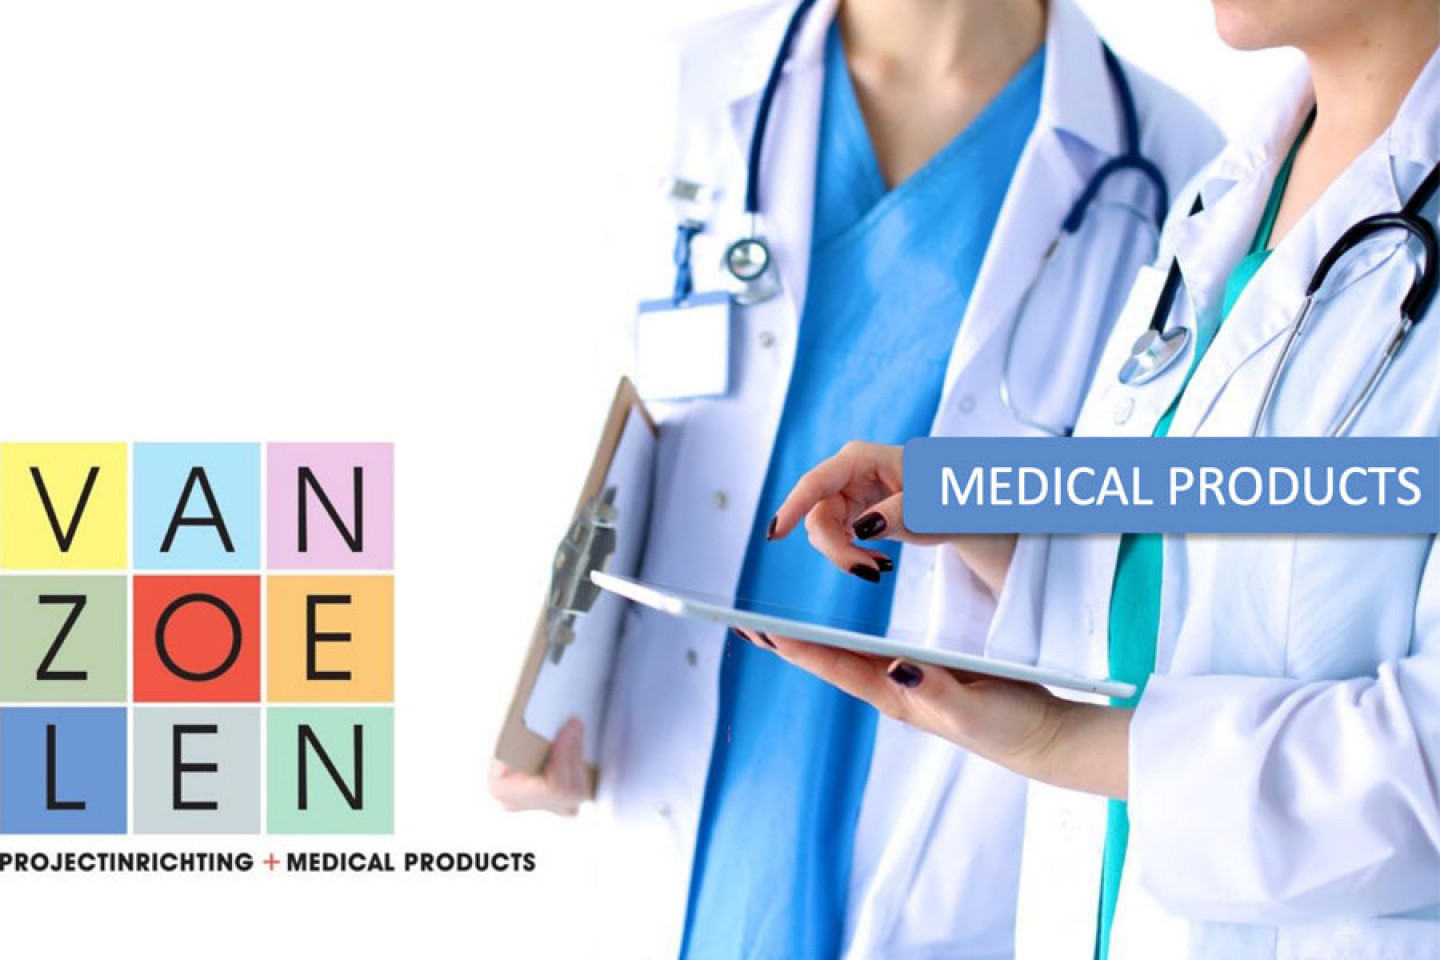 MedicalProducts